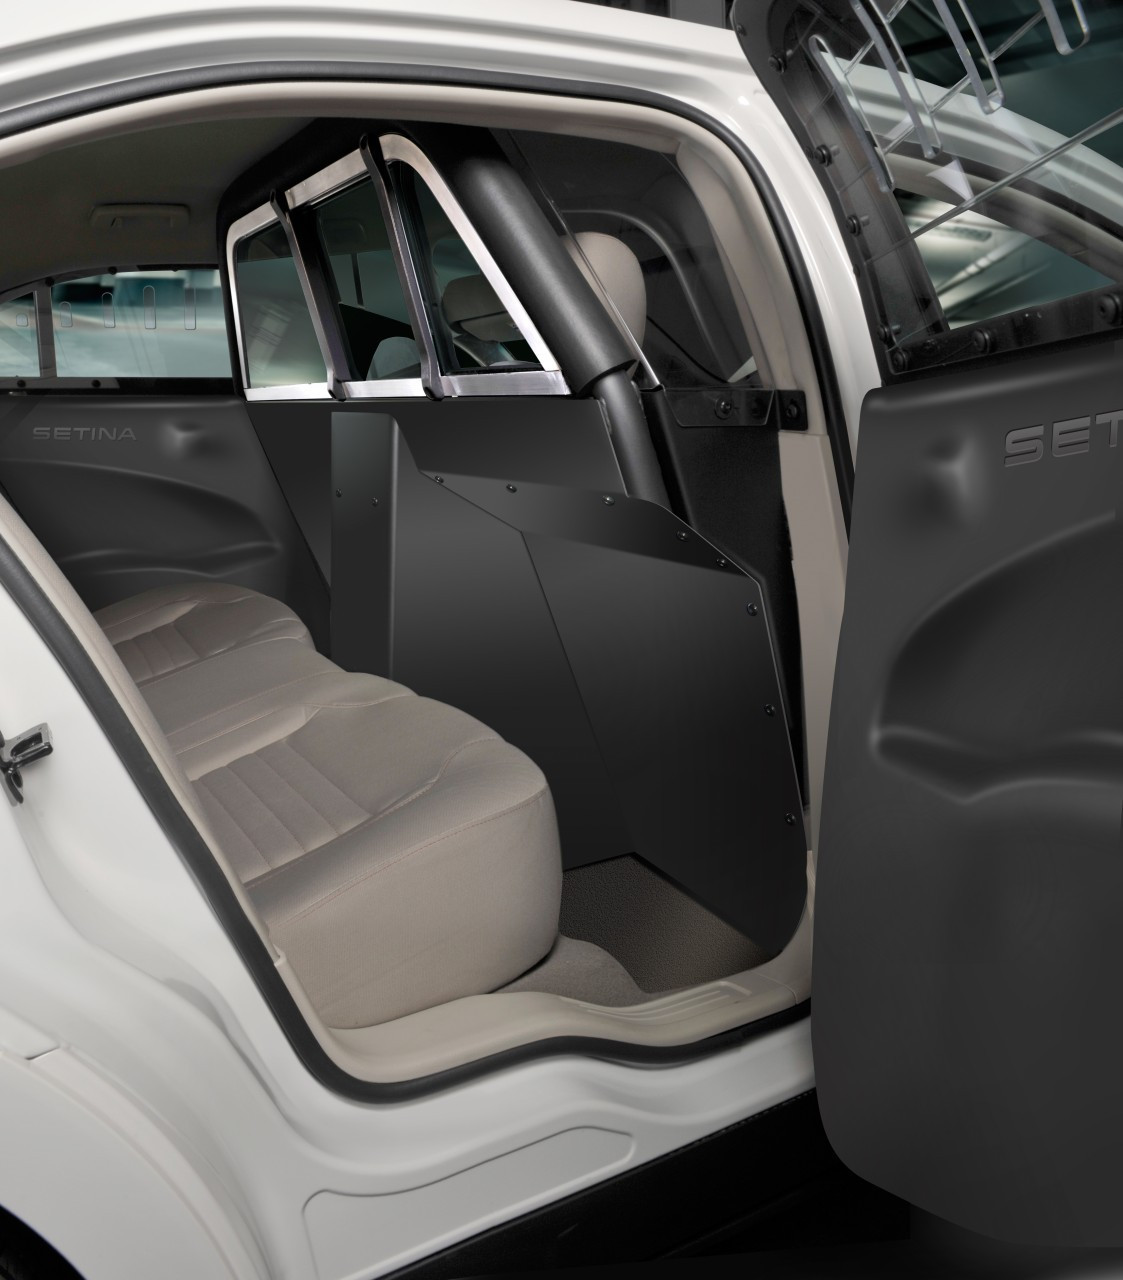 Setina Dodge Charger 2015 2019 Police Car Prisoner Partition Xl Cage Provides Extra Legroom For Prisoner And More Space For Drivers Seat